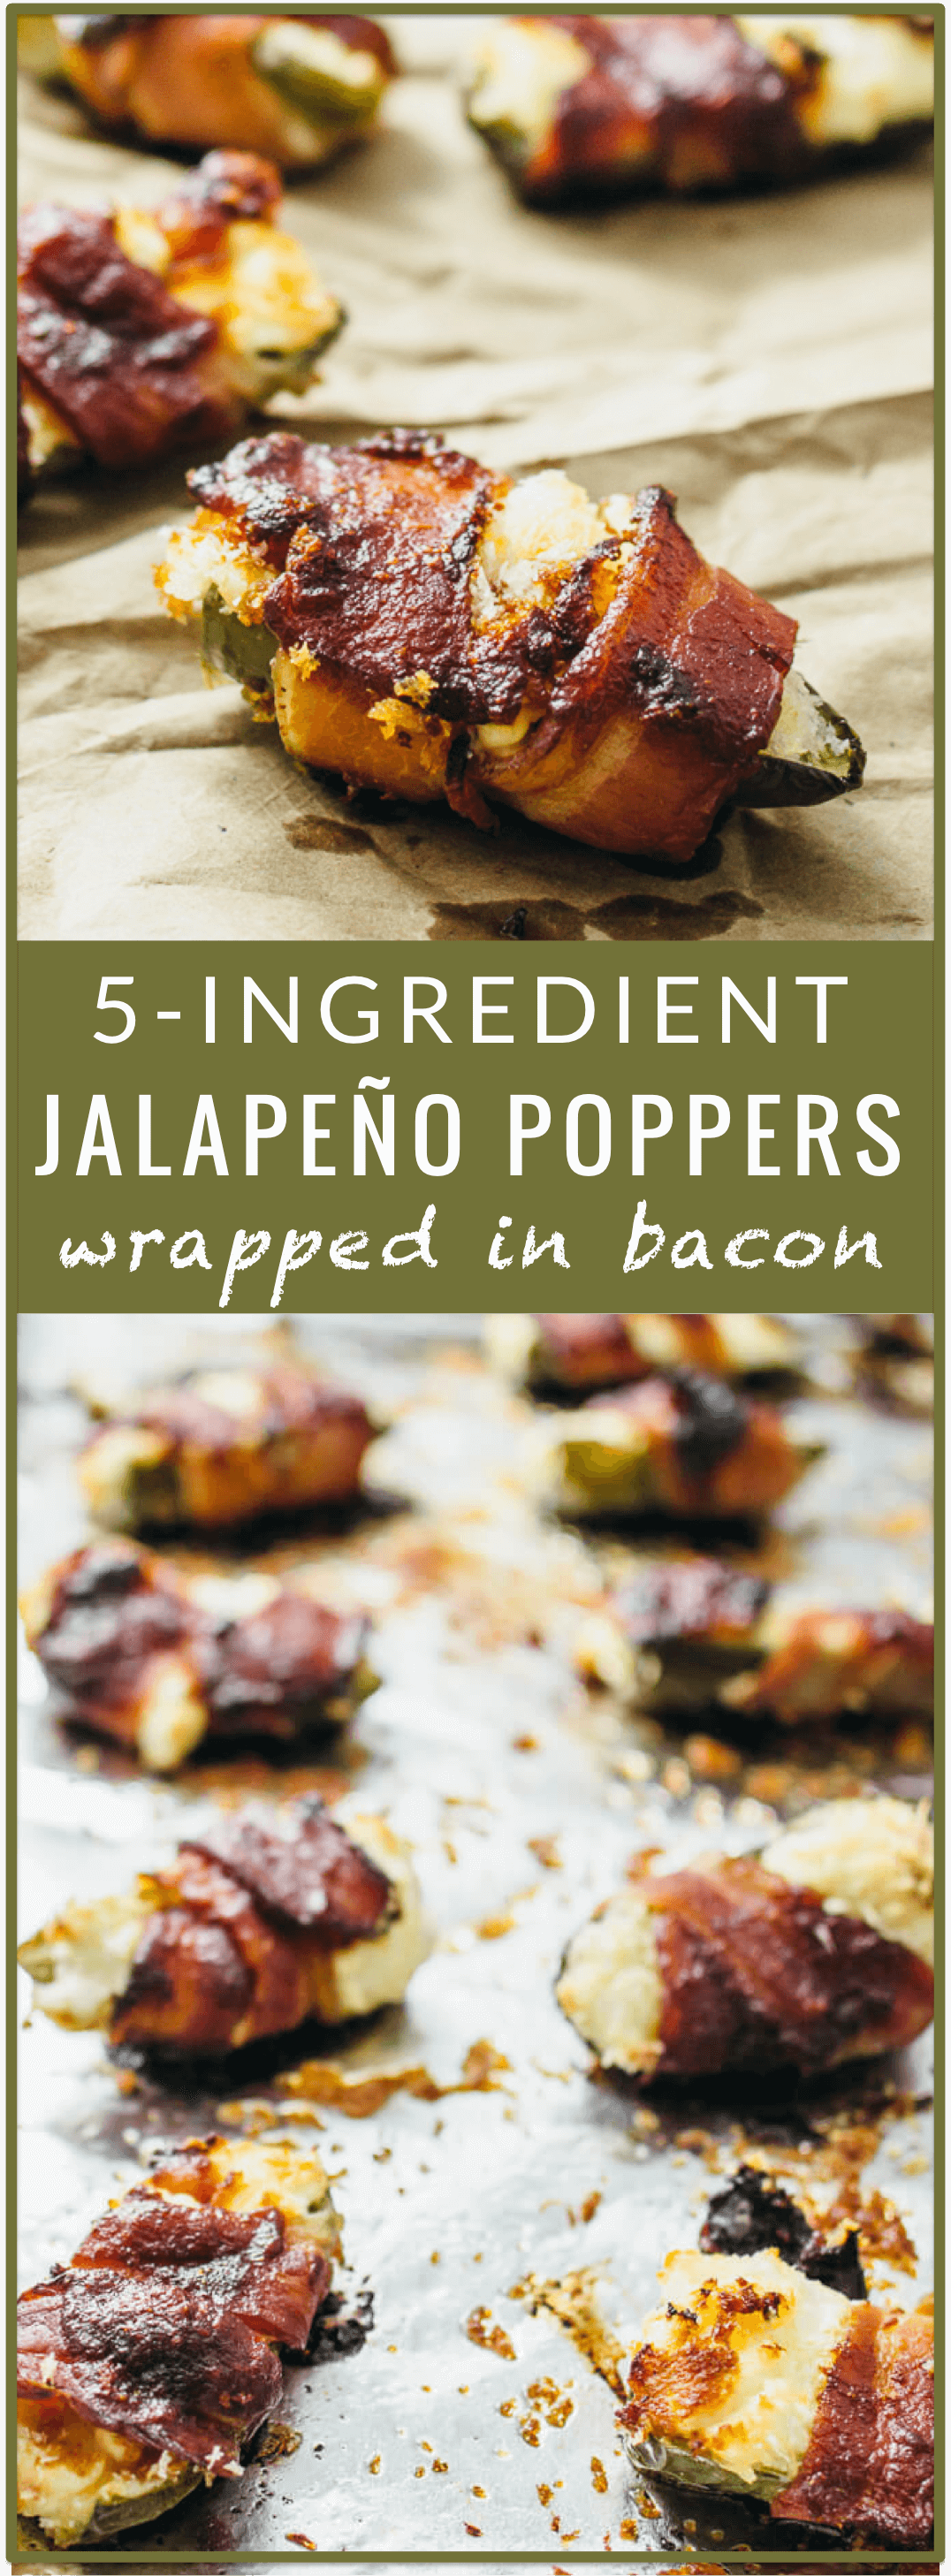 Baked jalapeño poppers wrapped in bacon - You'll love these tasty baked jalapeño poppers! They are stuffed with cream cheese, wrapped in bacon, and brushed with BBQ sauce. It's an easy recipe with only 5 ingredients. - savorytooth.com